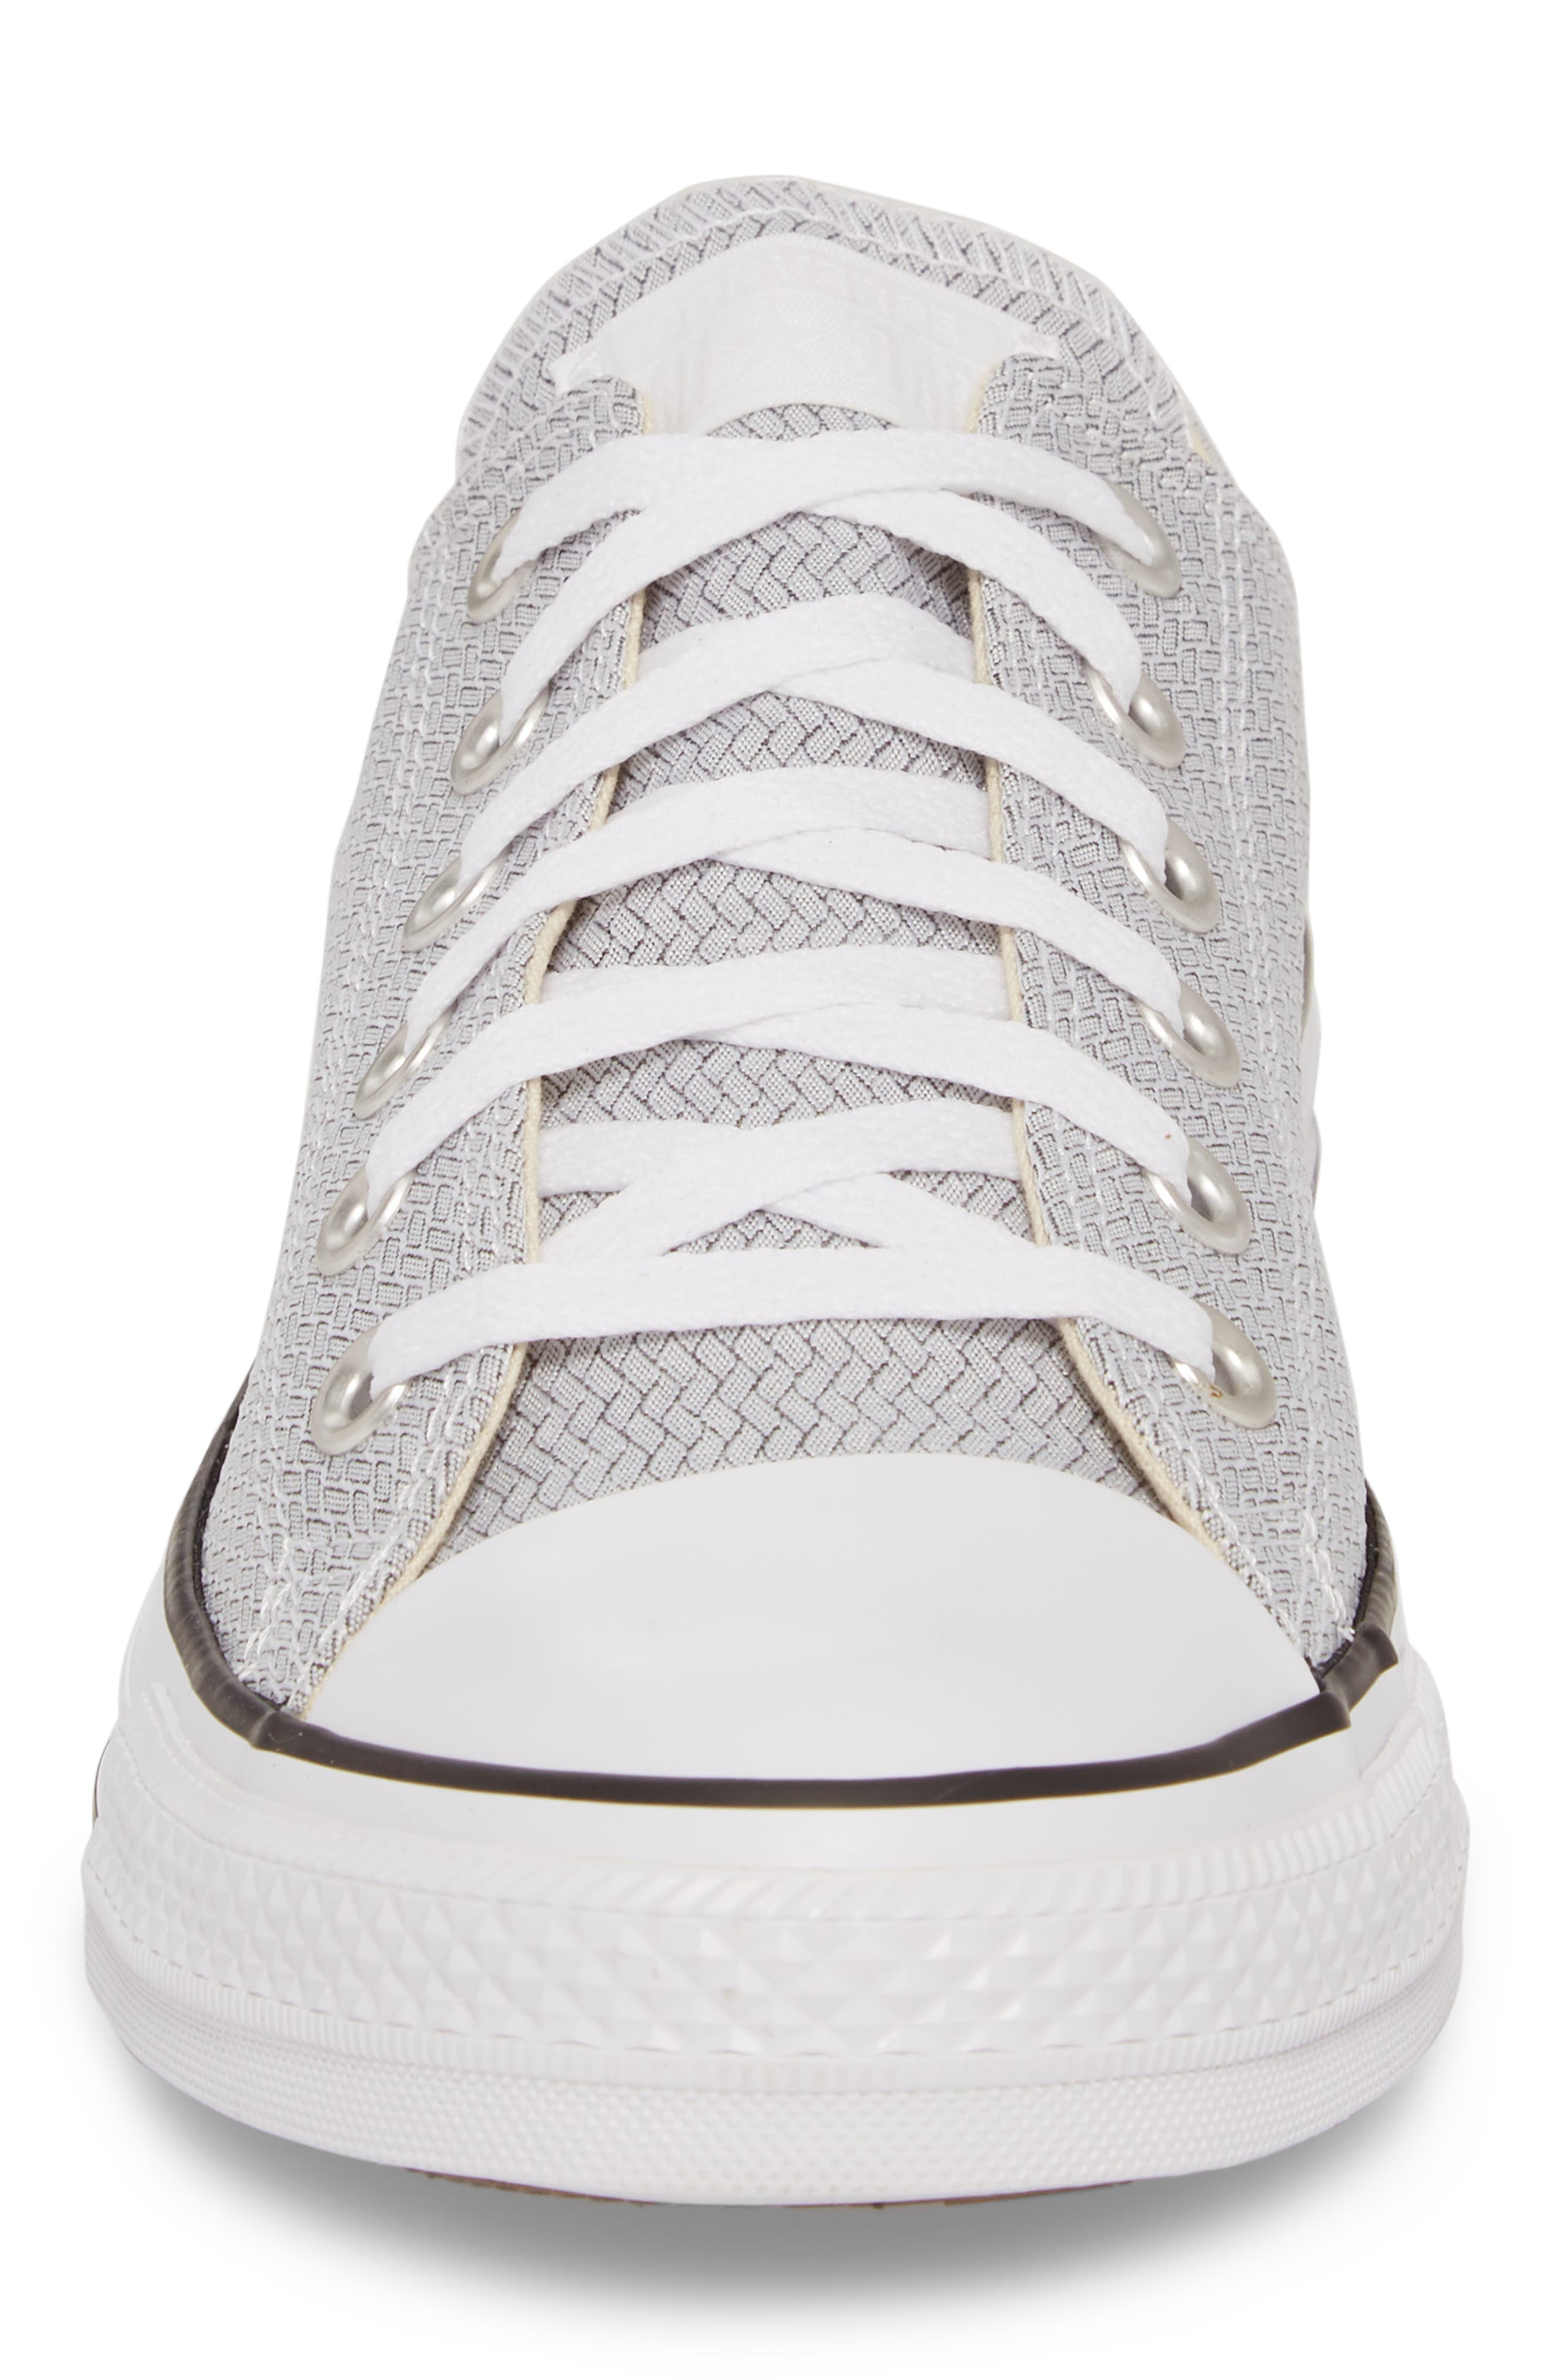 All Star<sup>®</sup> Ripstop Low Top Sneaker,                             Alternate thumbnail 7, color,